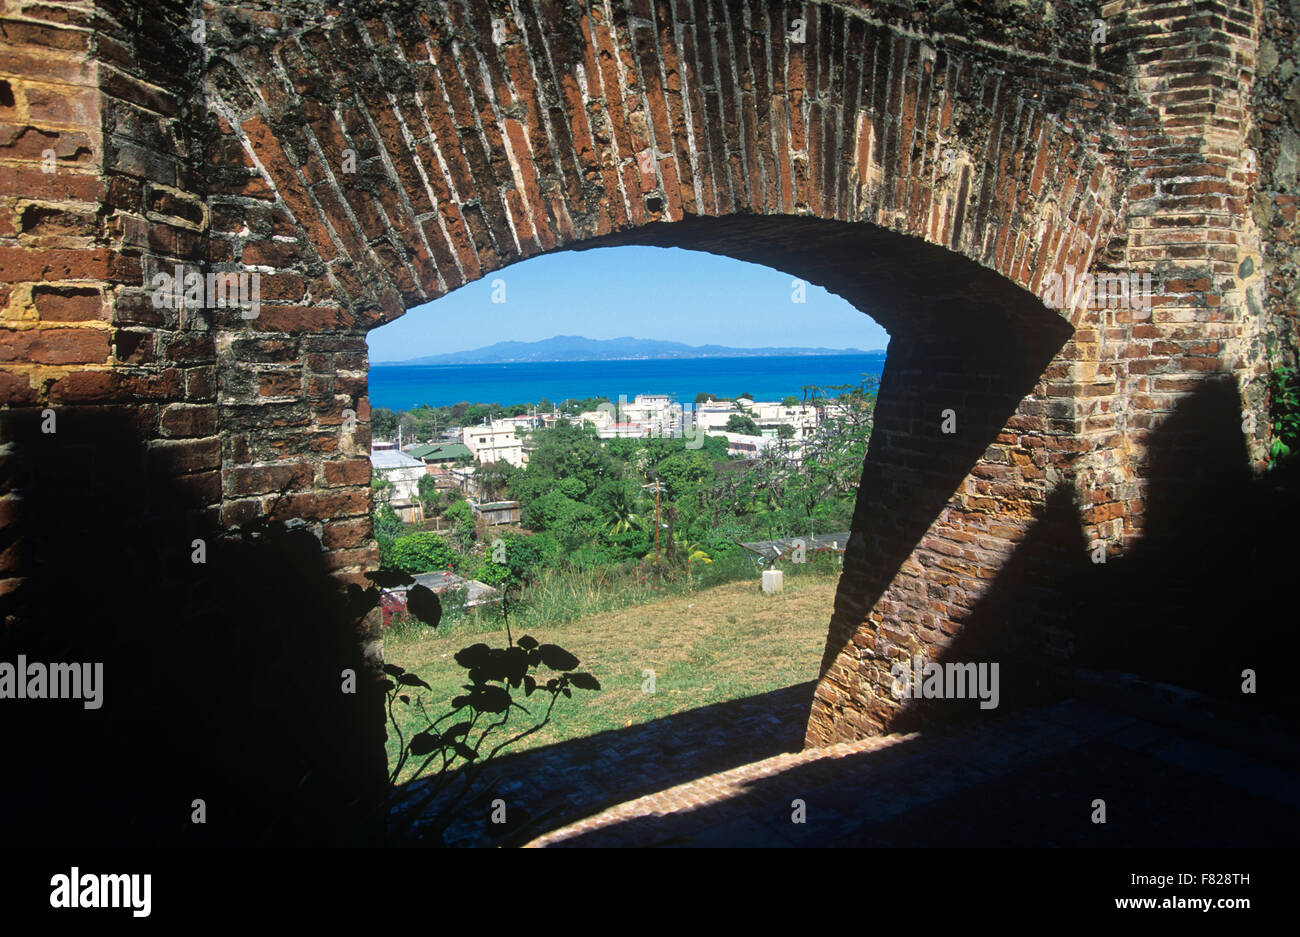 View of the town of Isabel Segunda from Fortin Conde de Mirasol, Vieques Island, Puerto Rico. Stock Photo